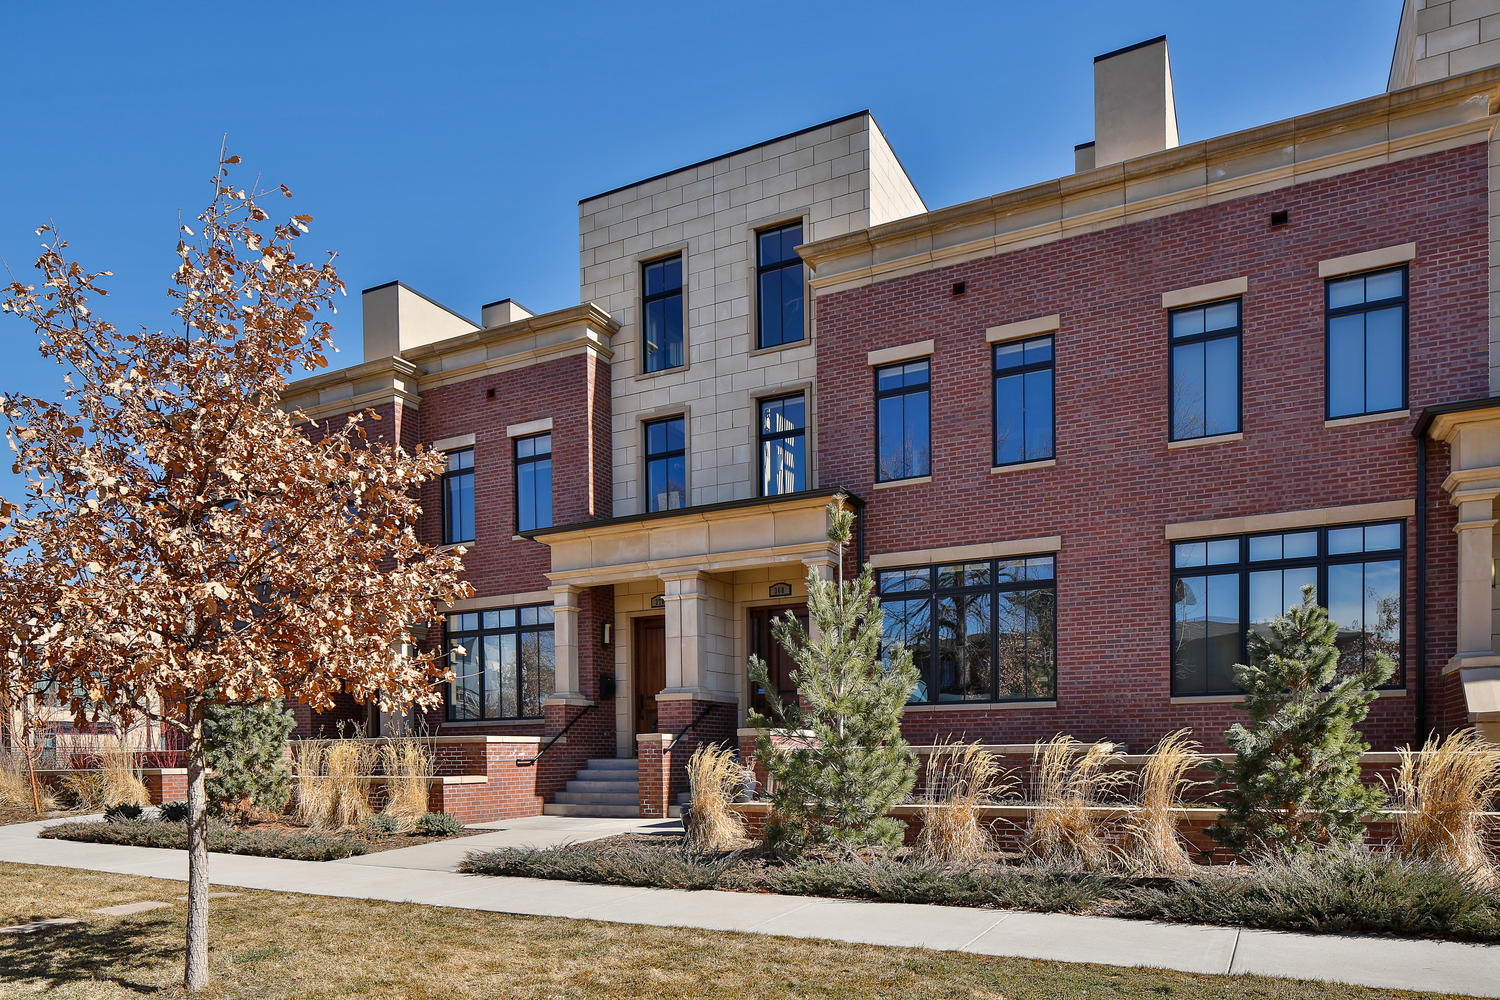 Maison unifamiliale pour l Vente à Stunning townhome close to everything Cherry Creek has to offer 368 N Garfield St Denver, Colorado, 80206 États-Unis